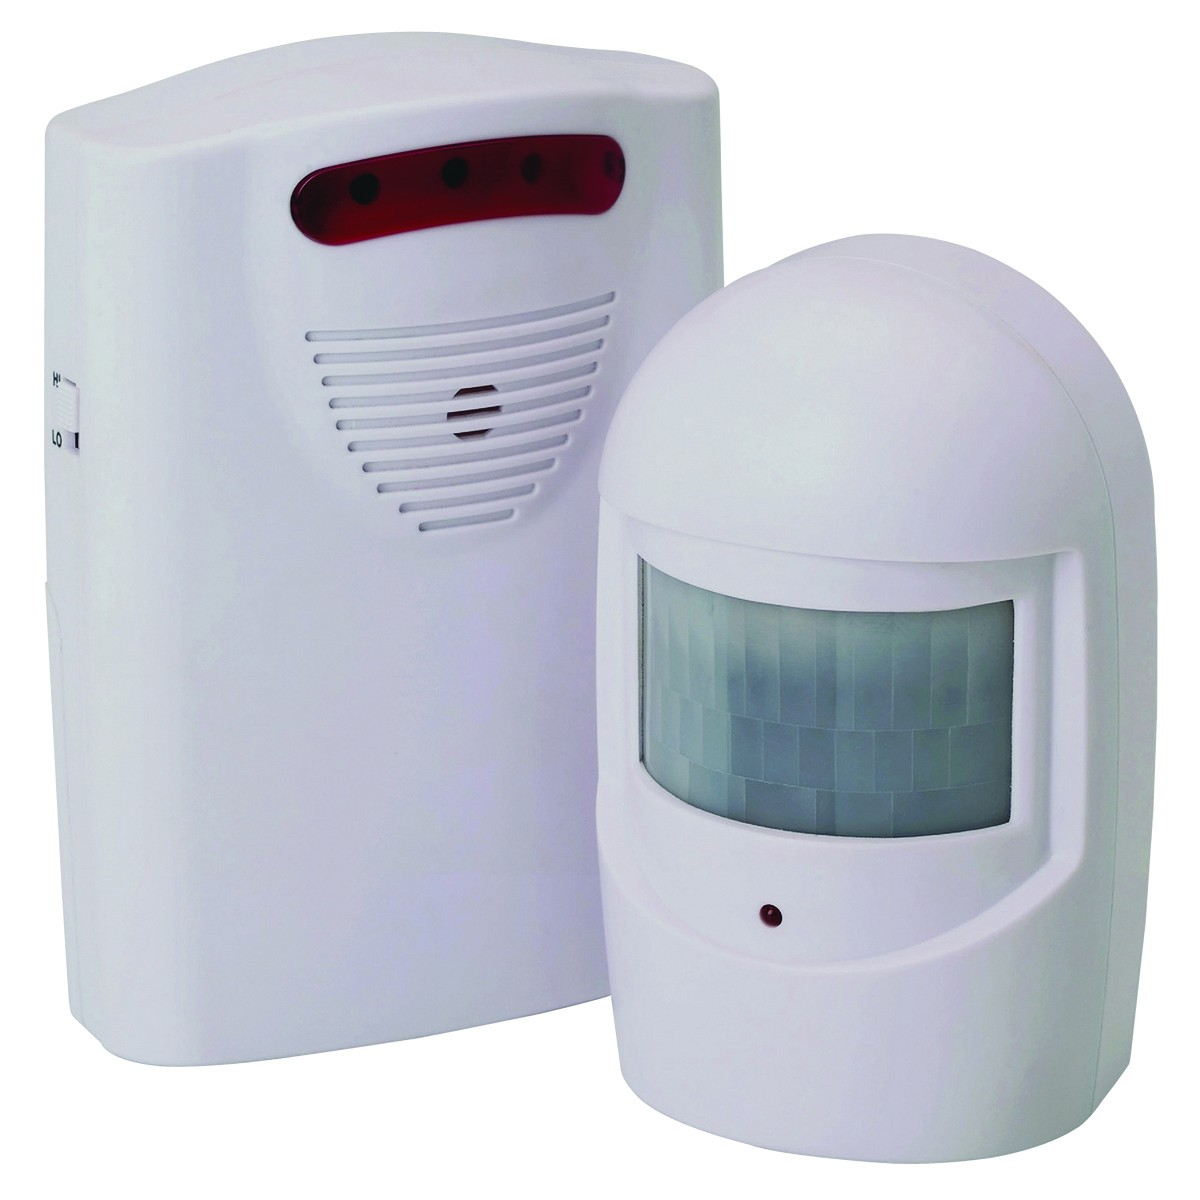 Driveway Alarm Wireless Pir Motion Sensor No Wiring Based Security System Required